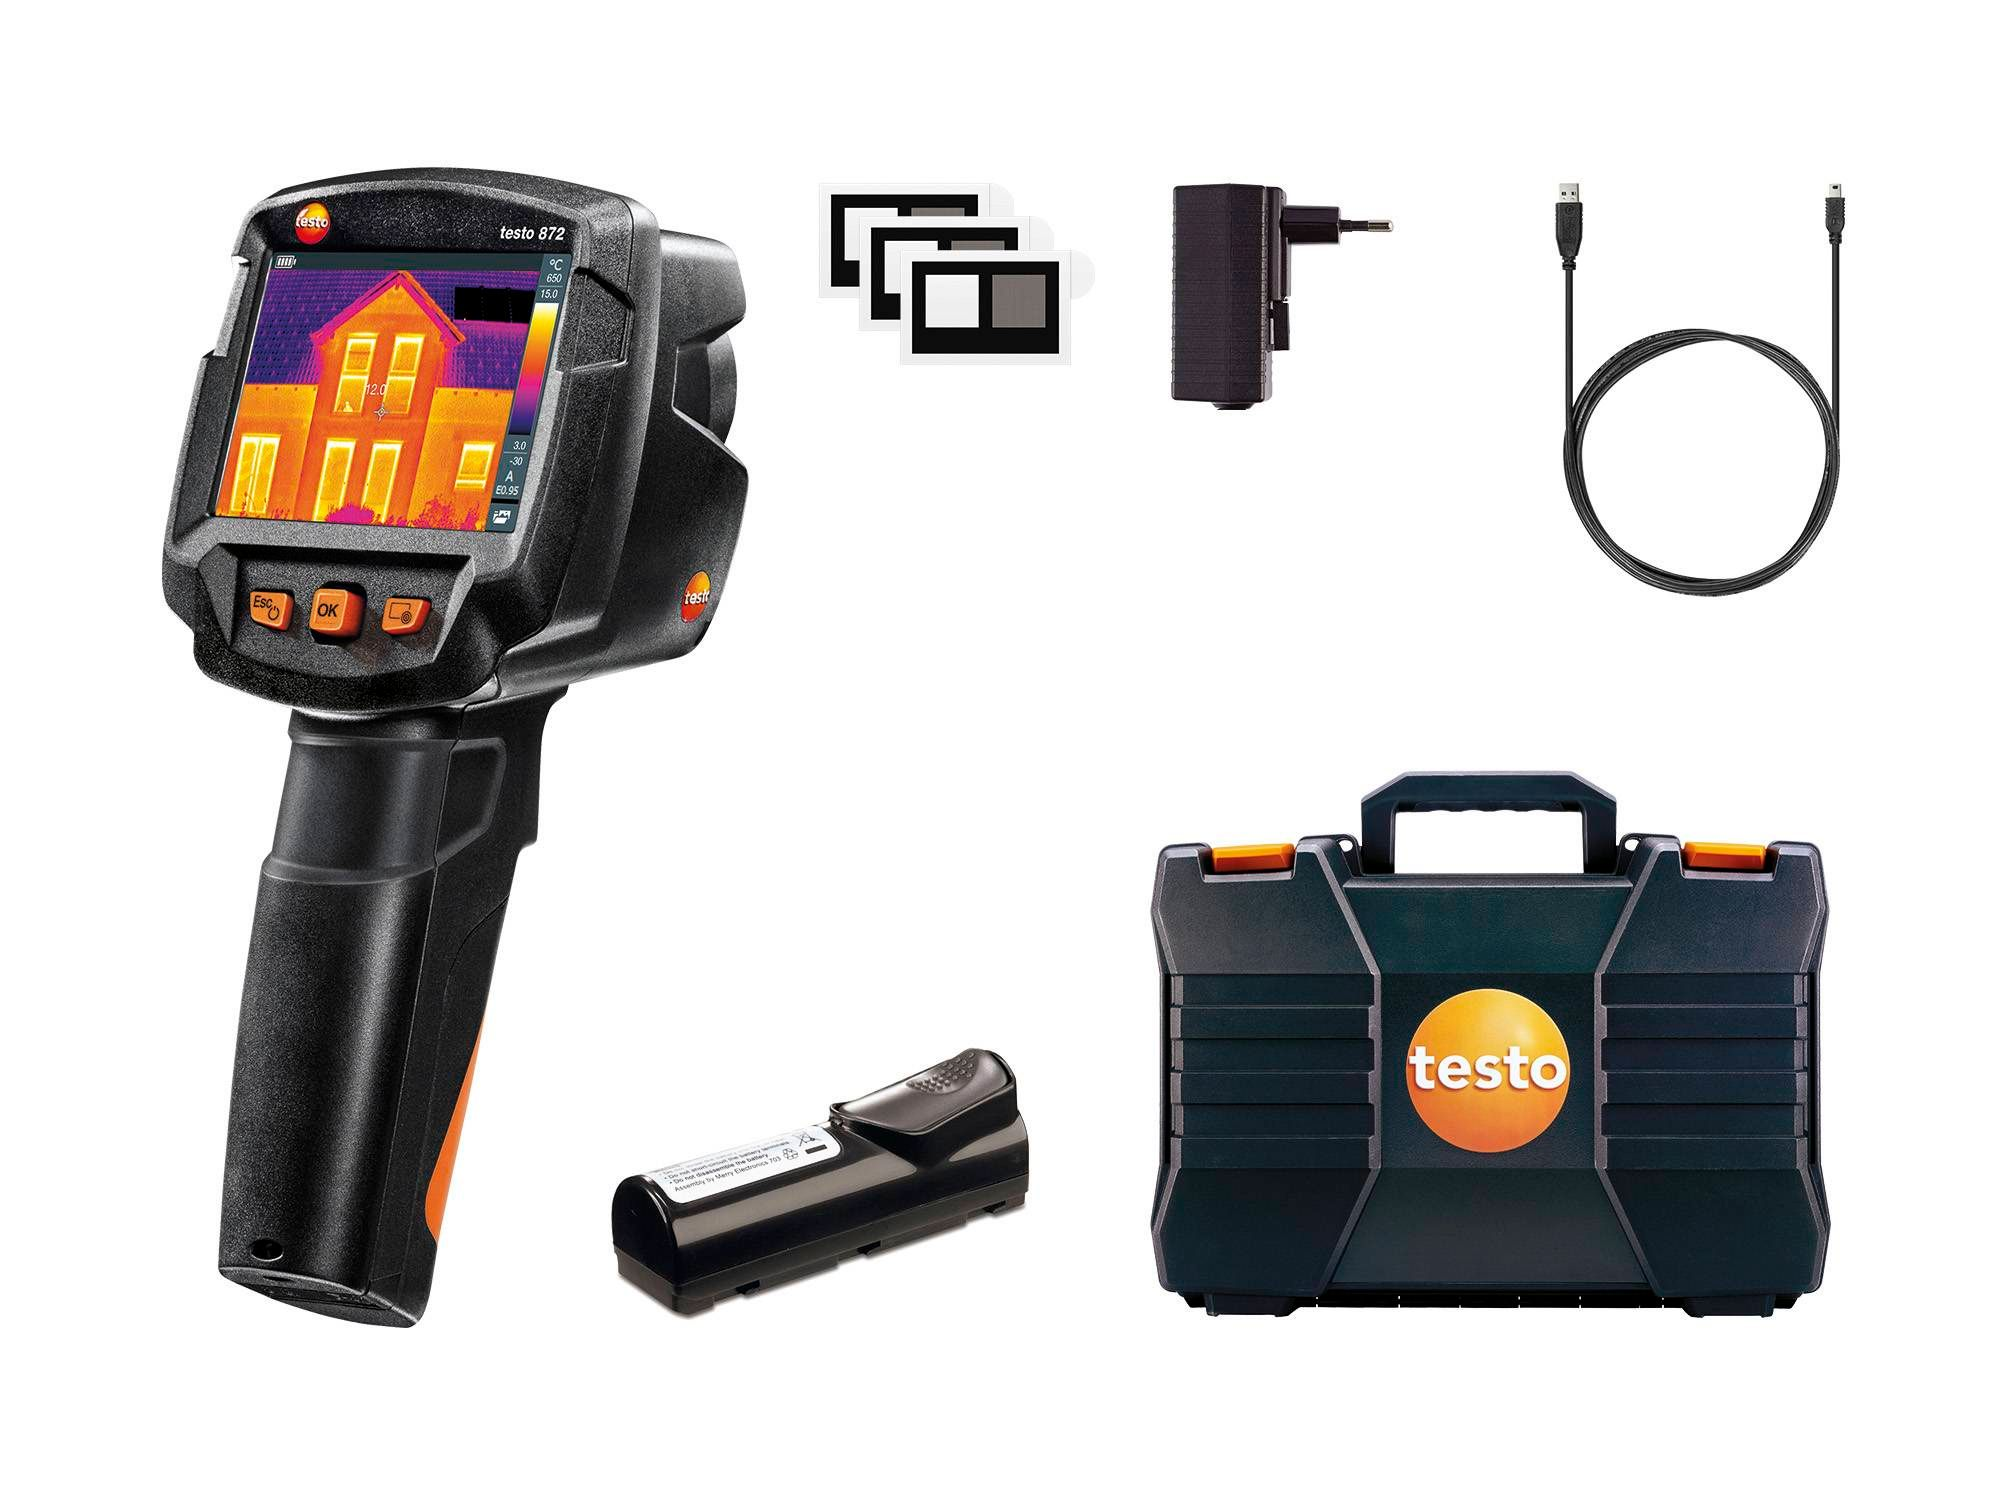 testo 872 - thermal imager with App - Delivery scope